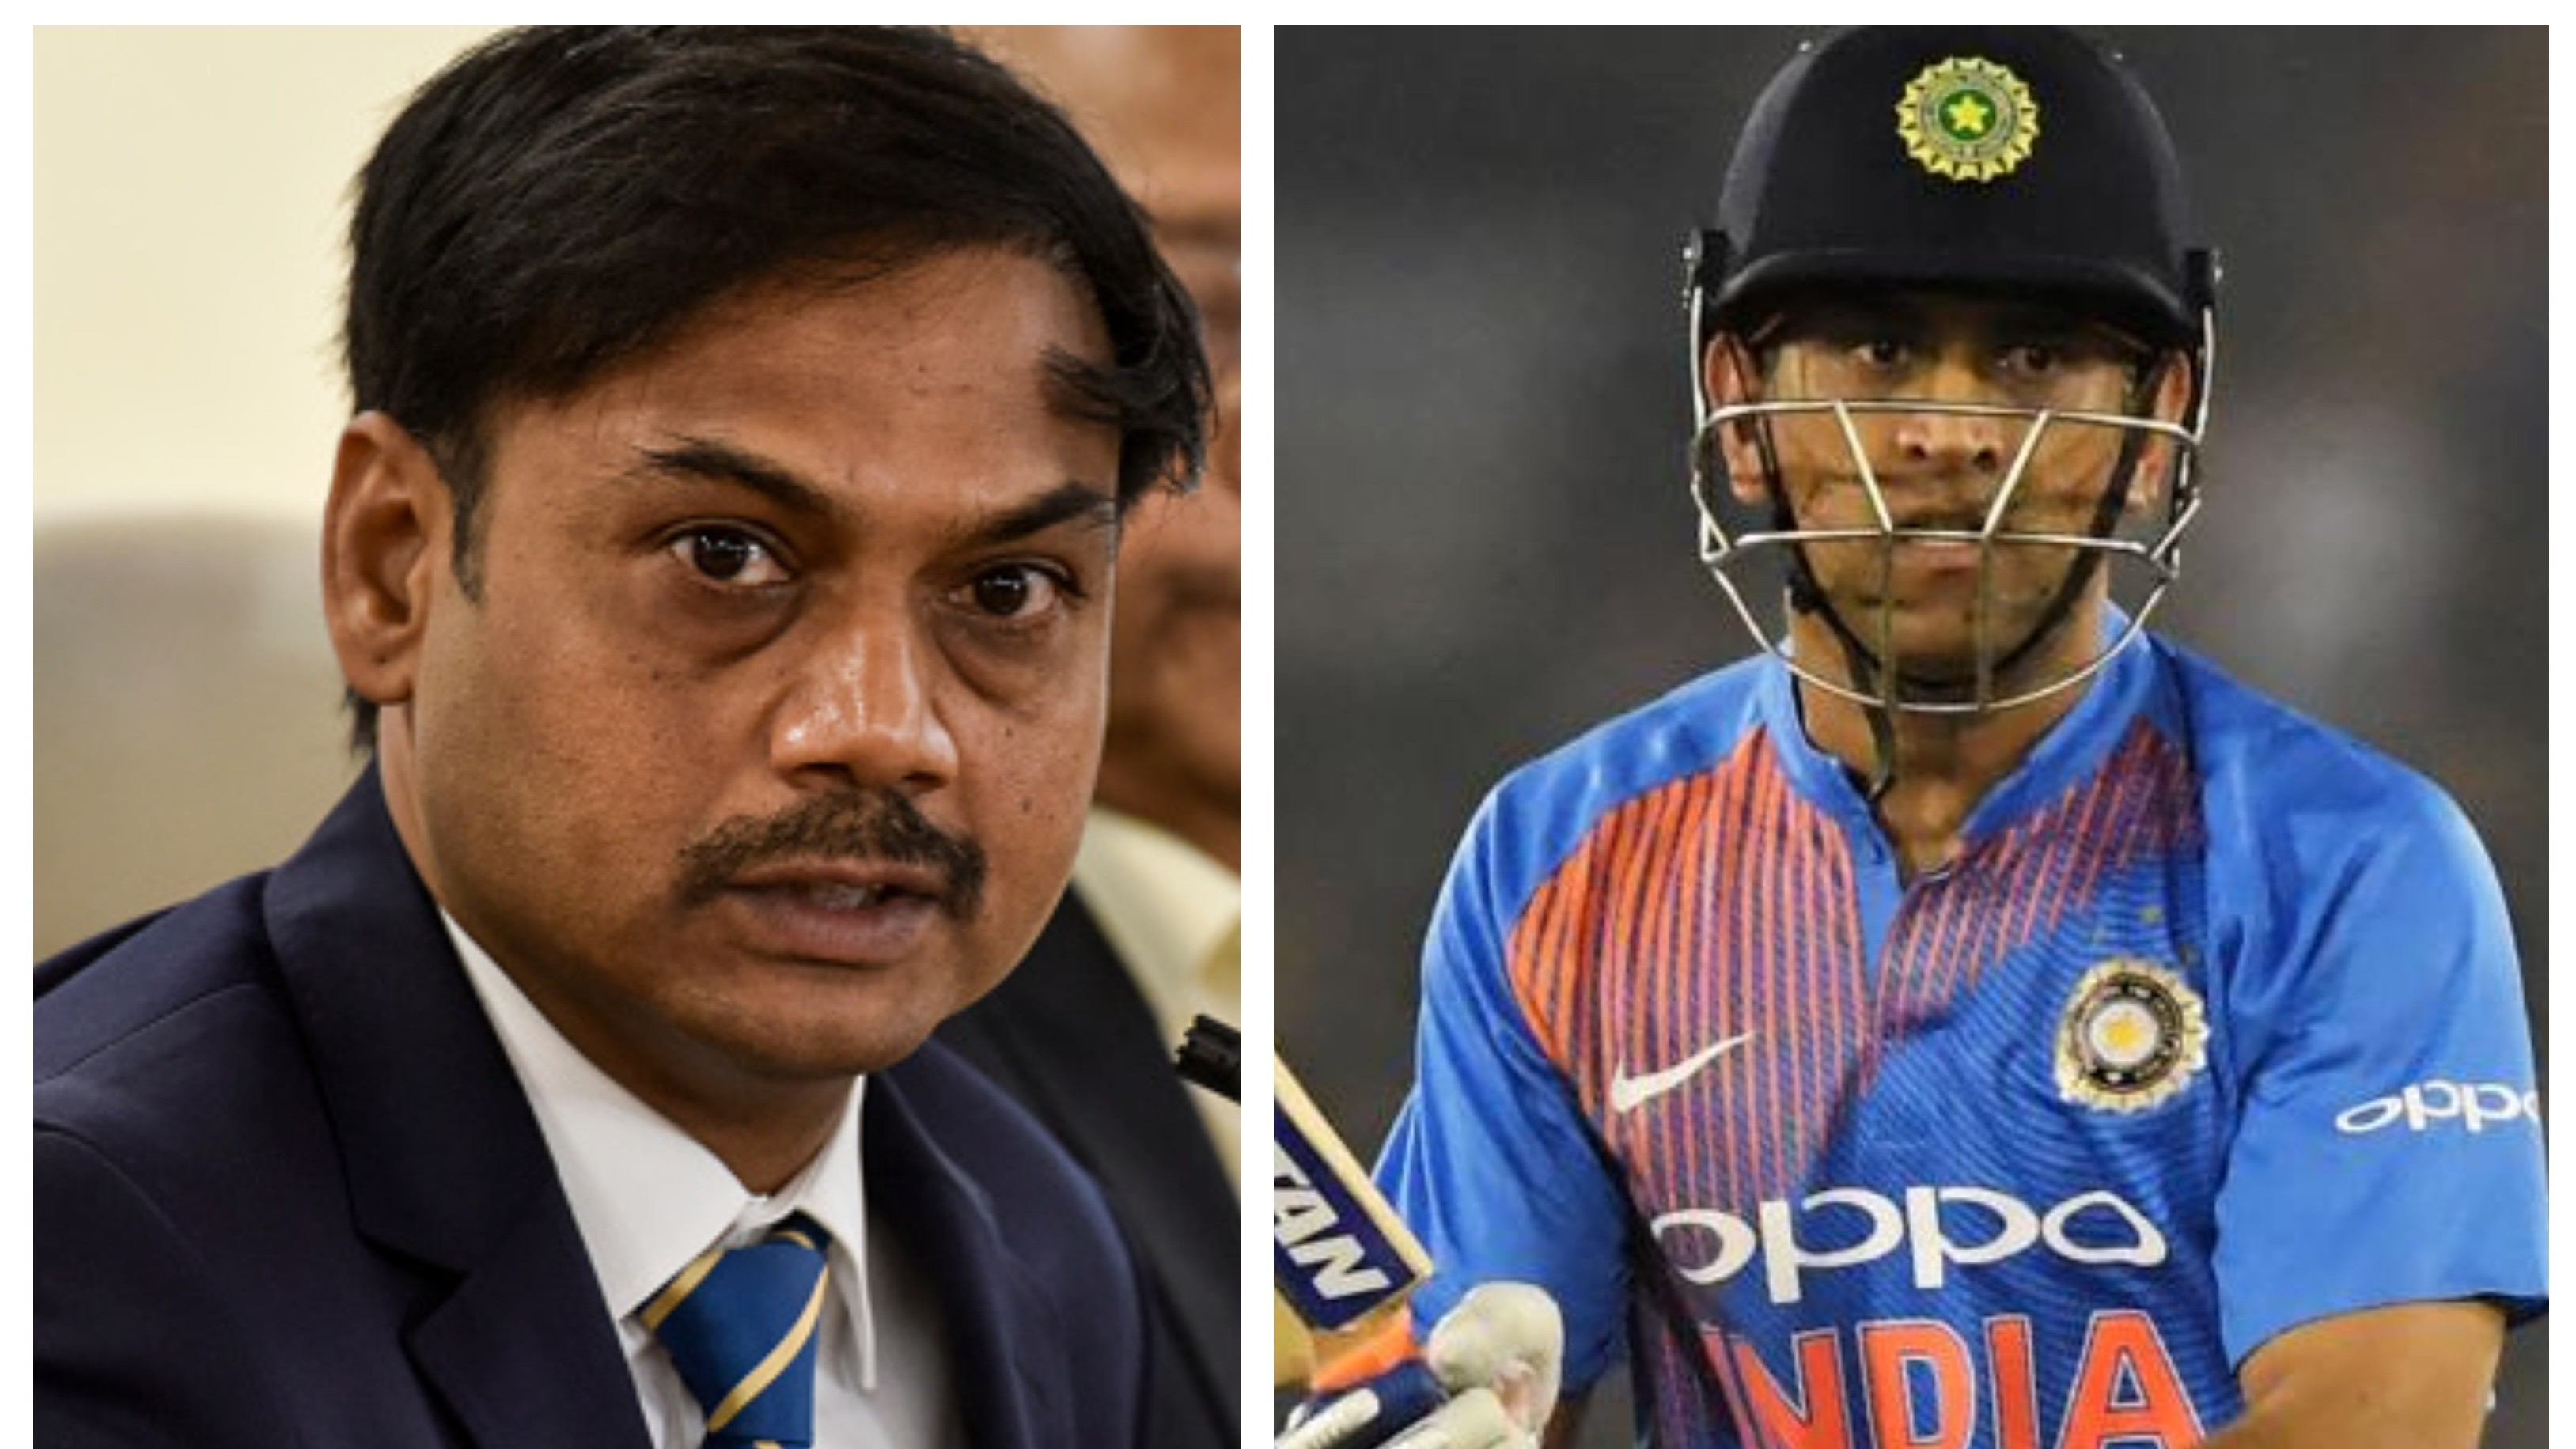 Dhoni yet to announce any retirement plans, says MSK Prasad